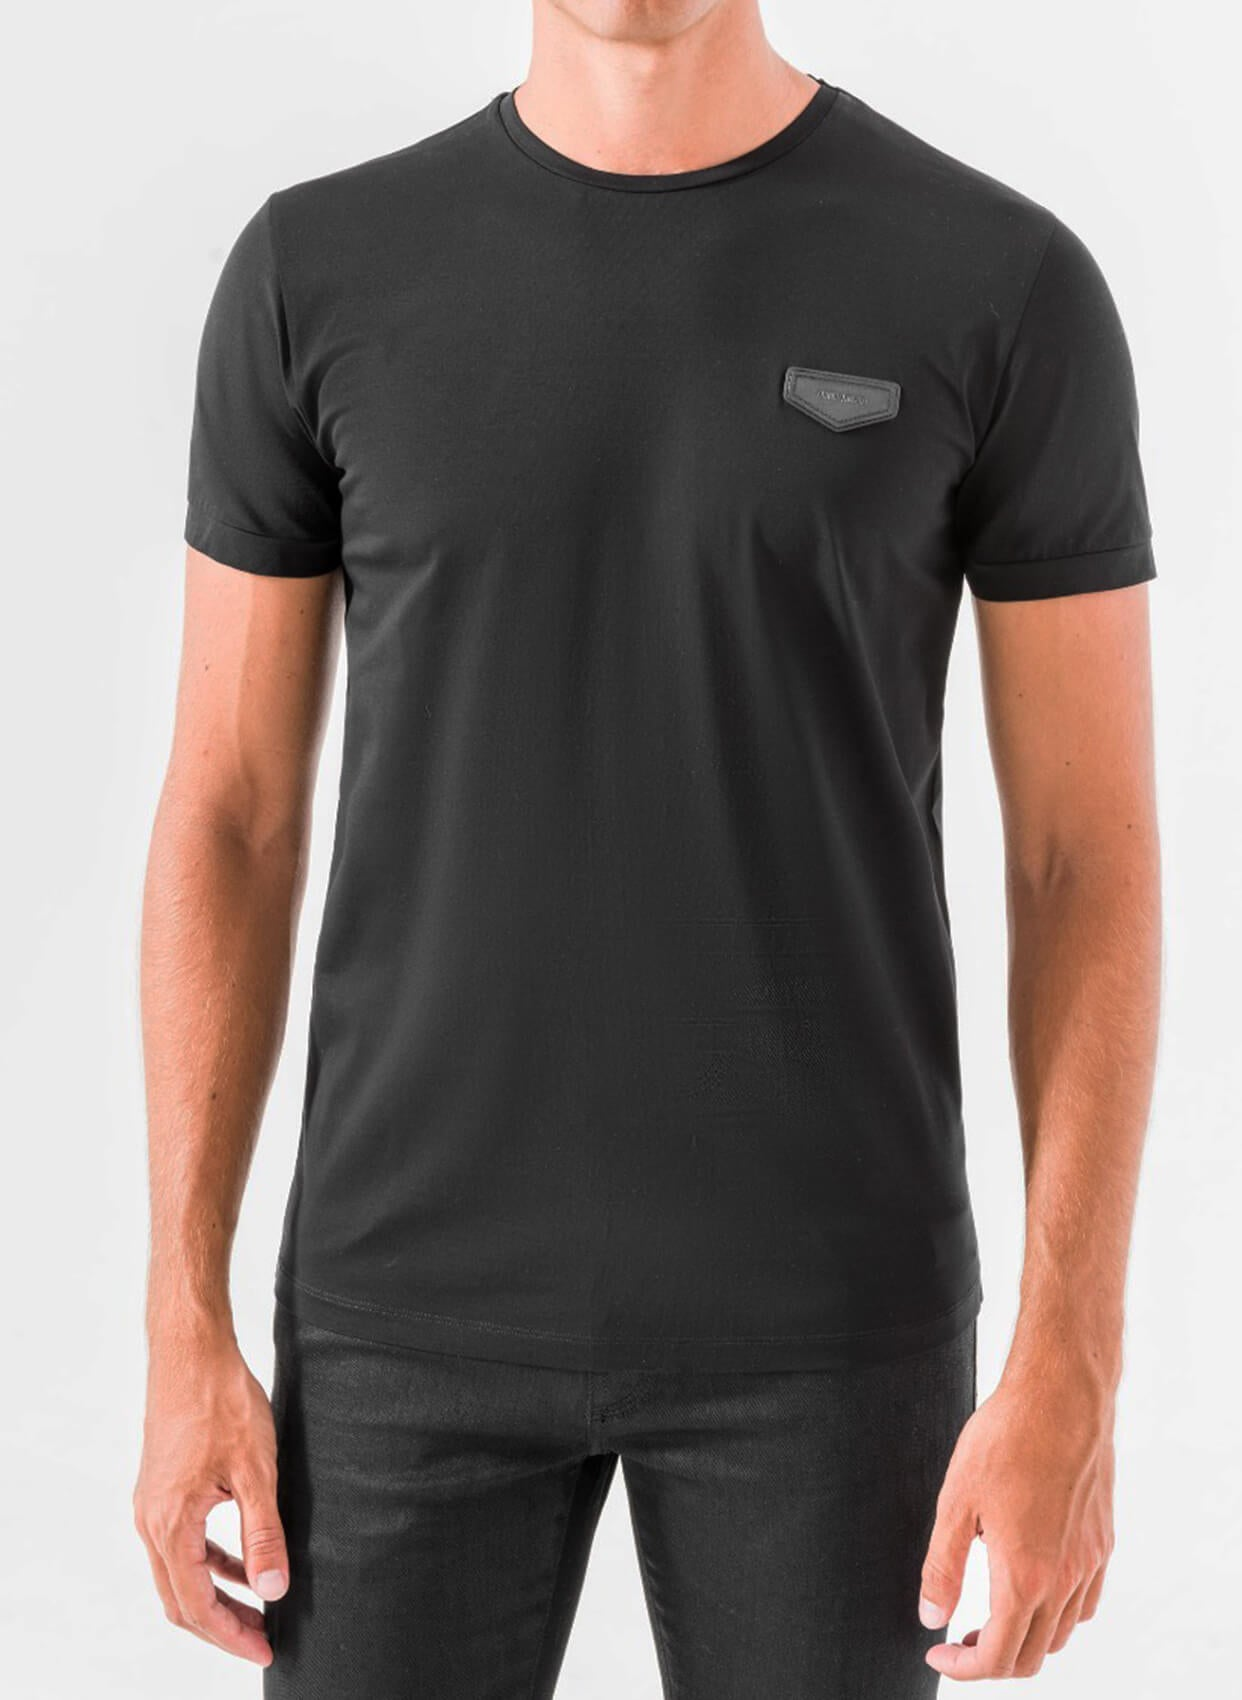 ANTONY MORATO T-SHIRT-Libas Trendy Fashion Store